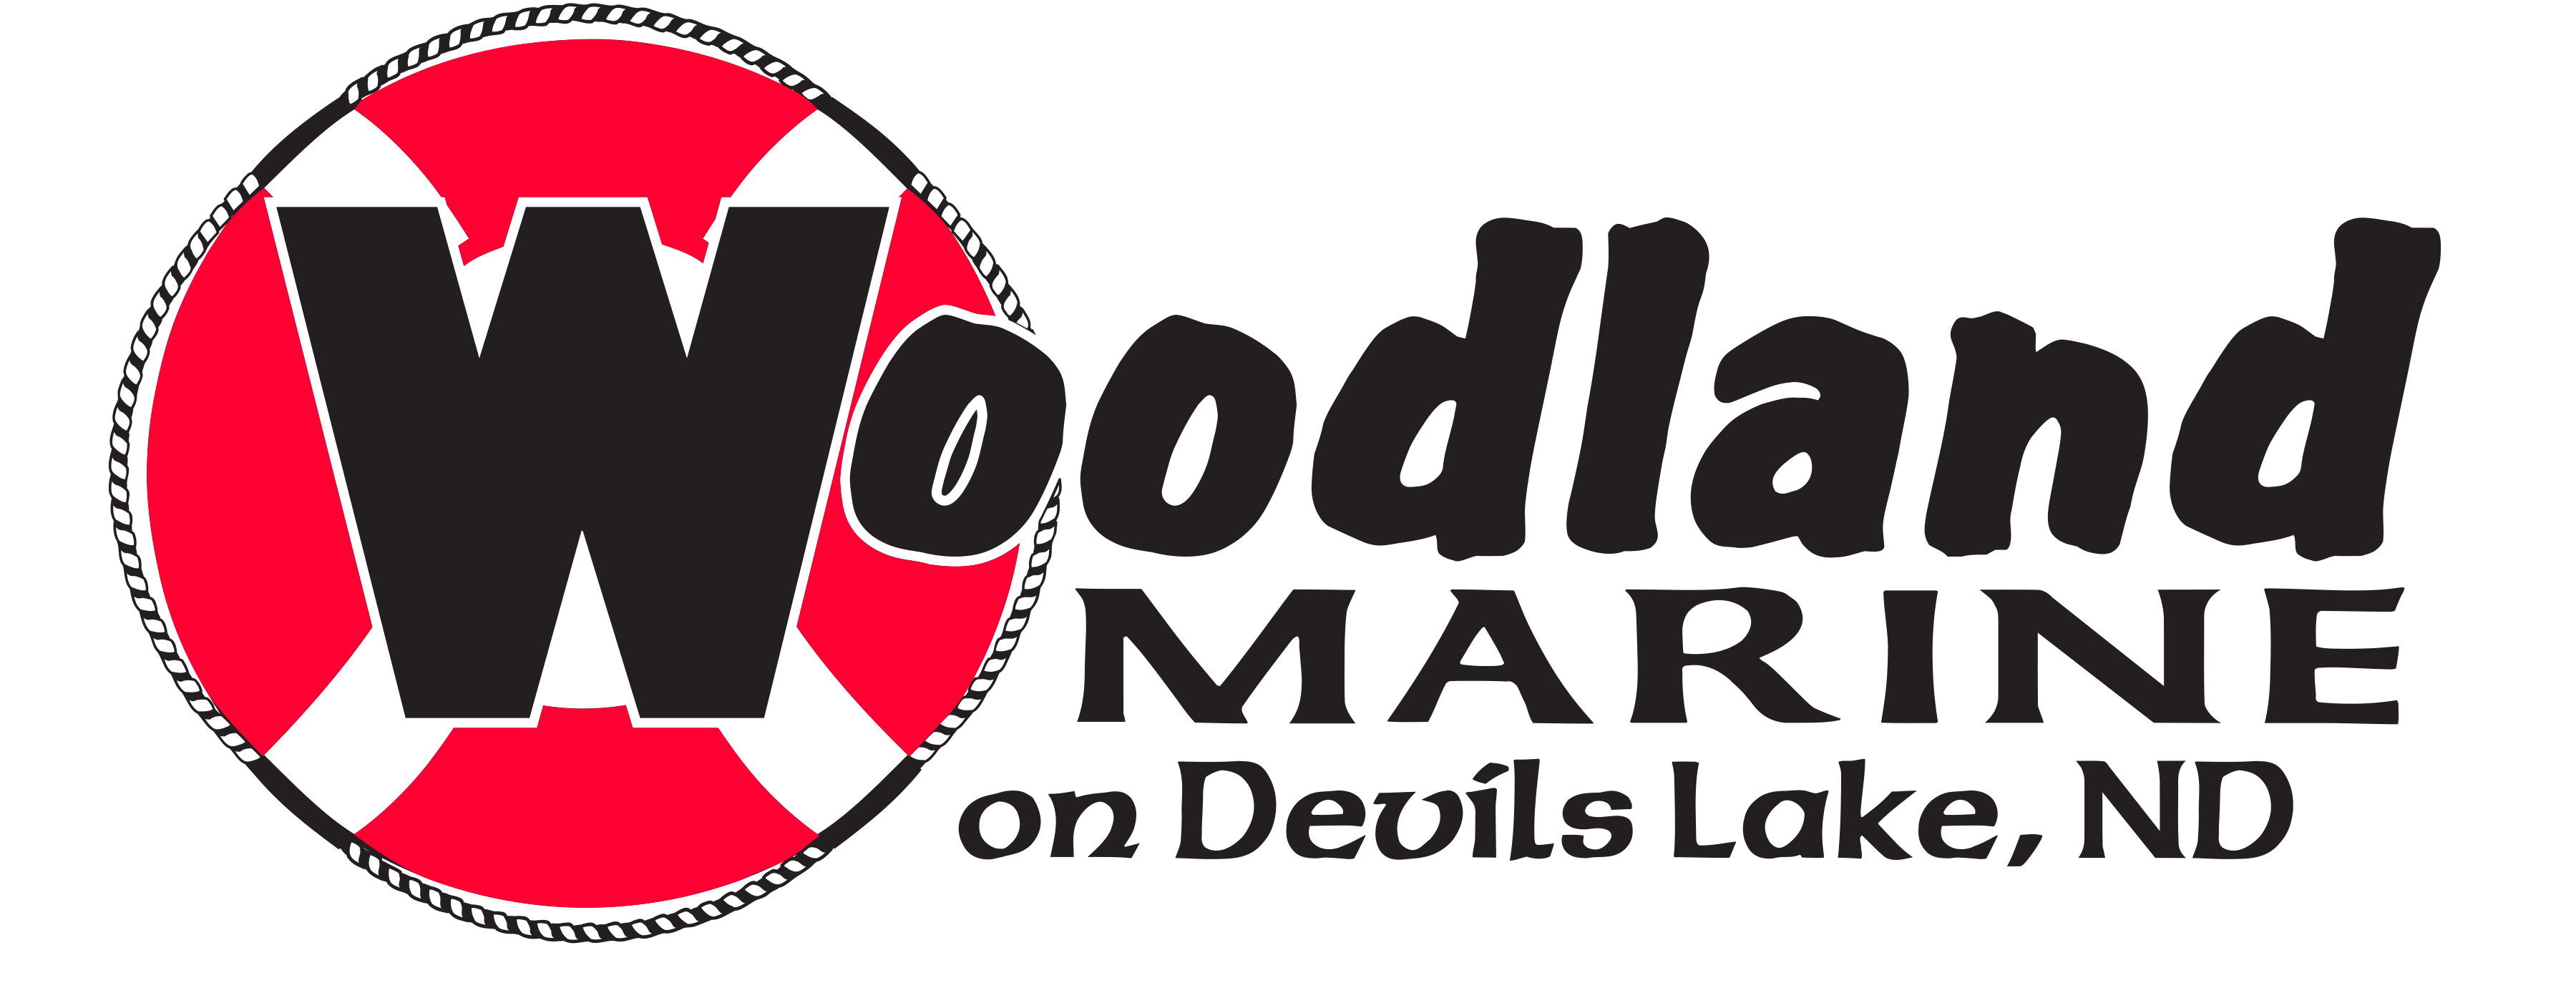 Woodland Marine Inc.